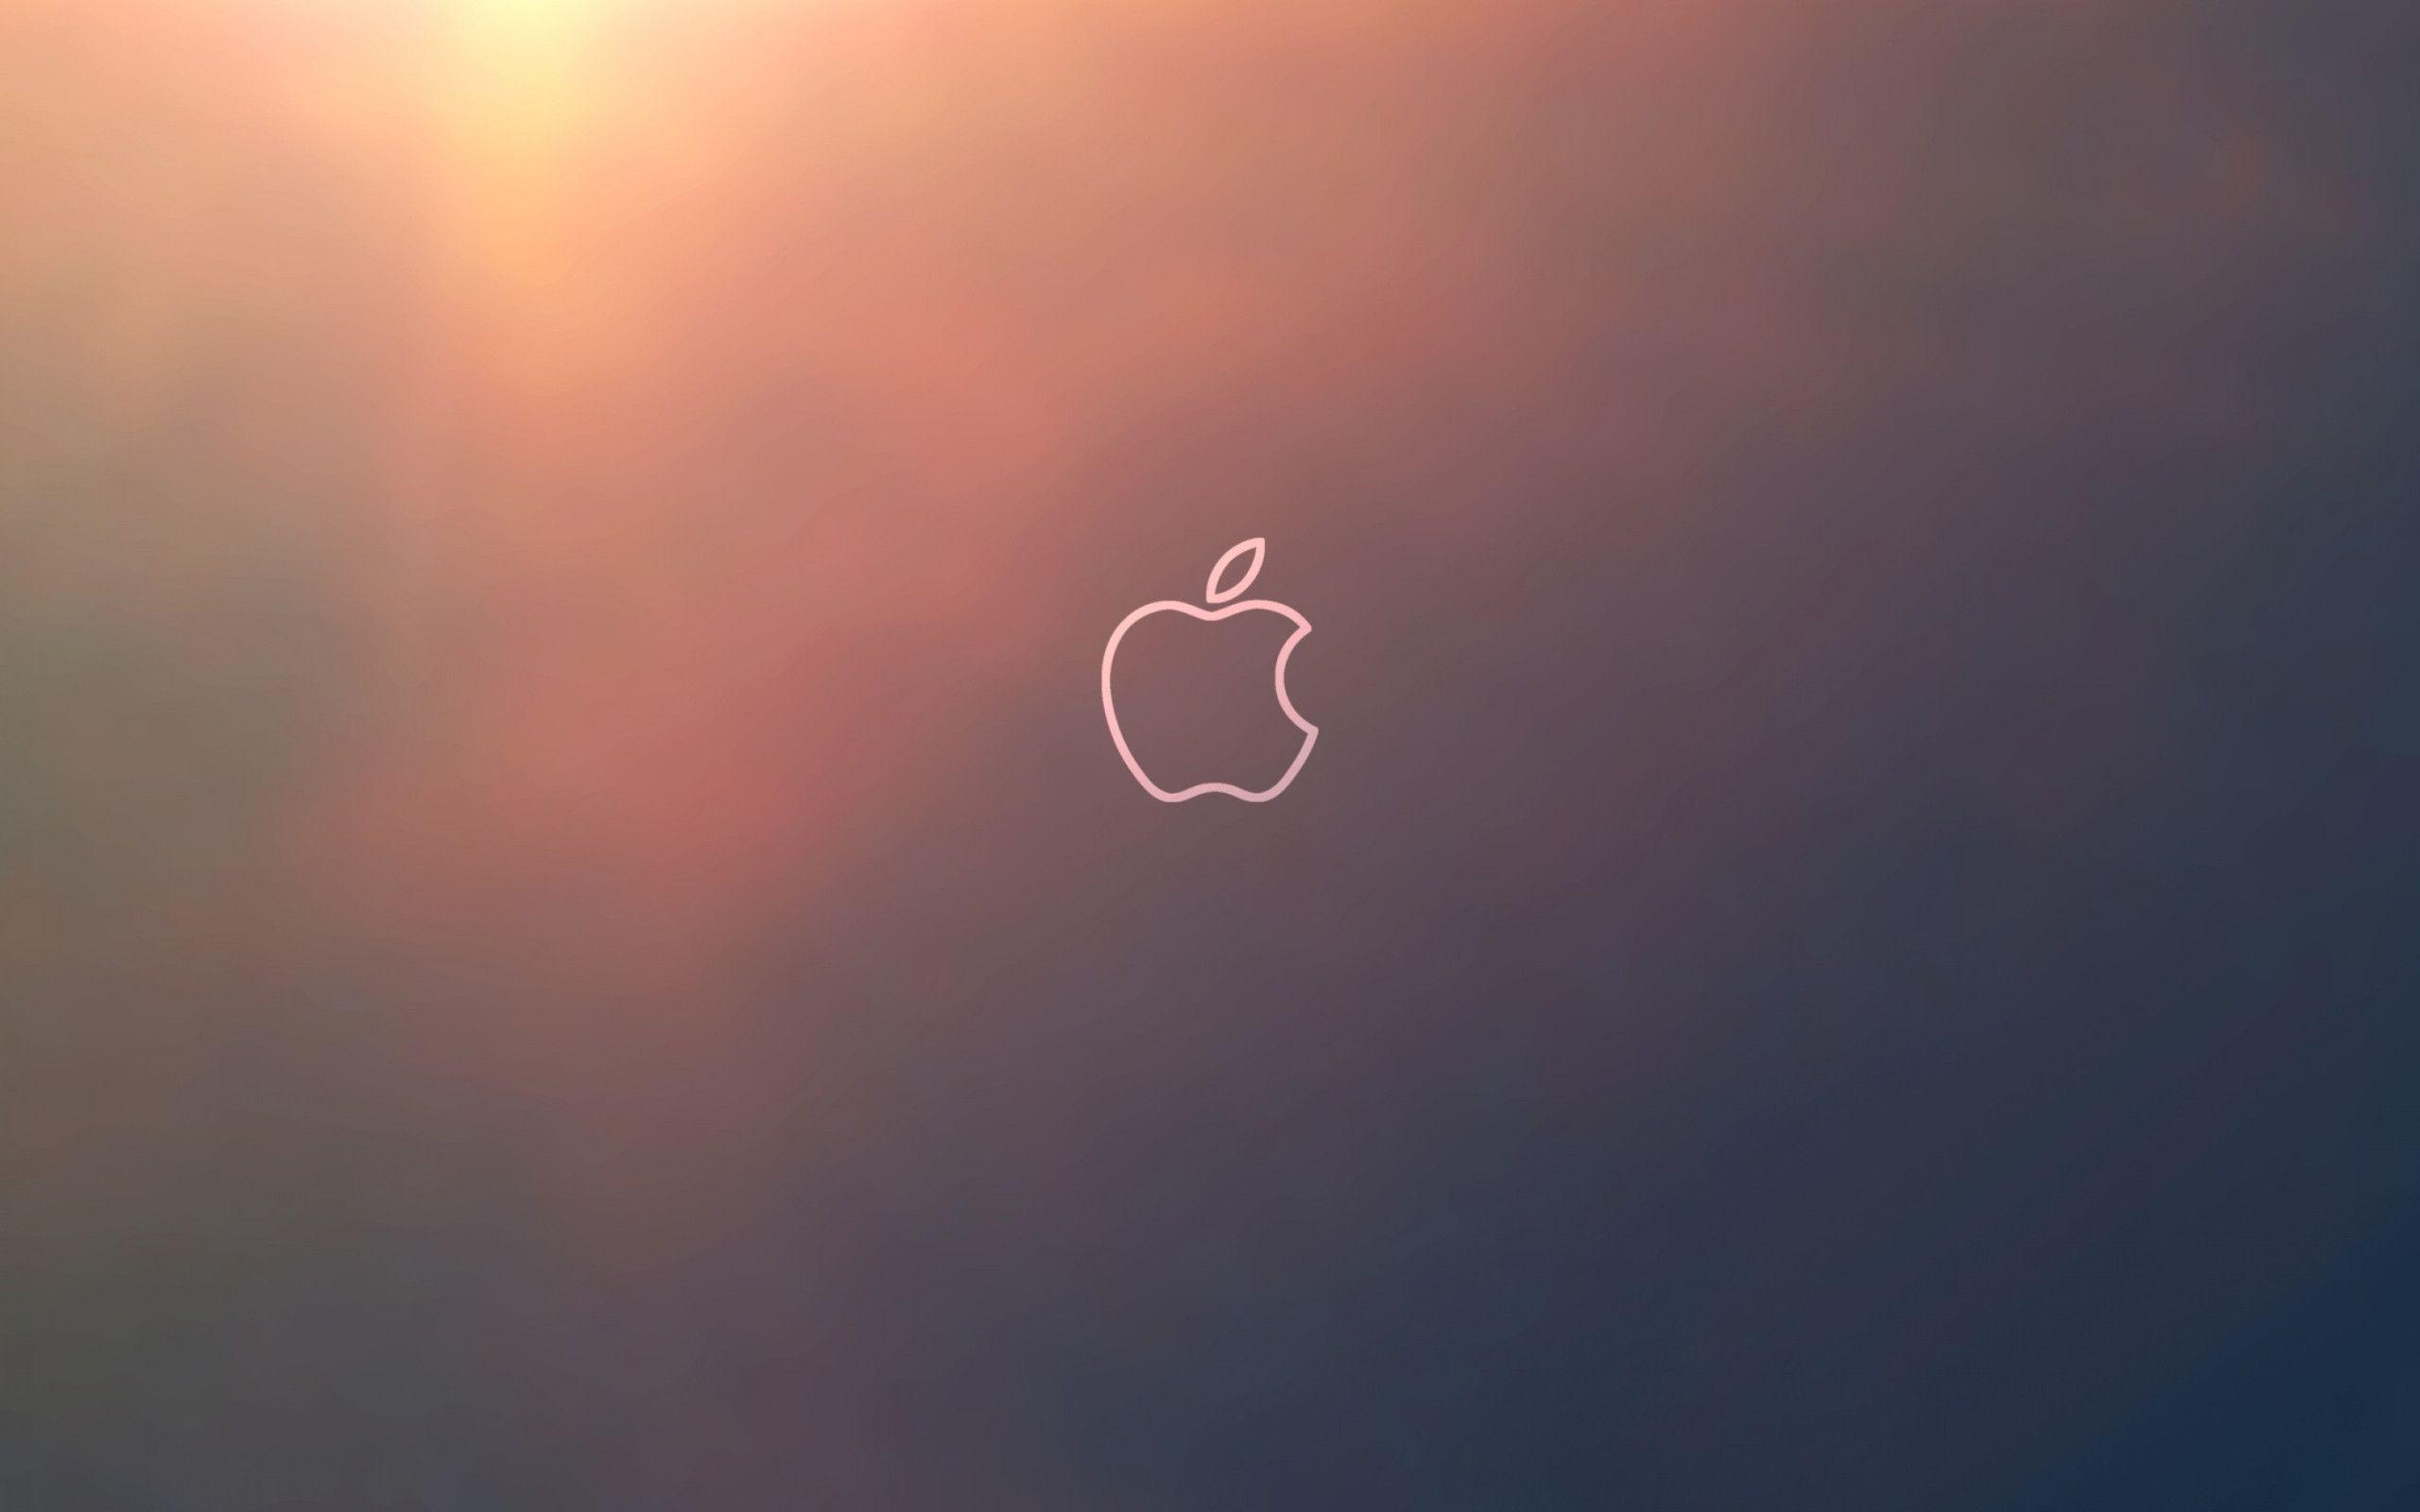 Apple Fluorescence Brand Mac Wallpapers Download